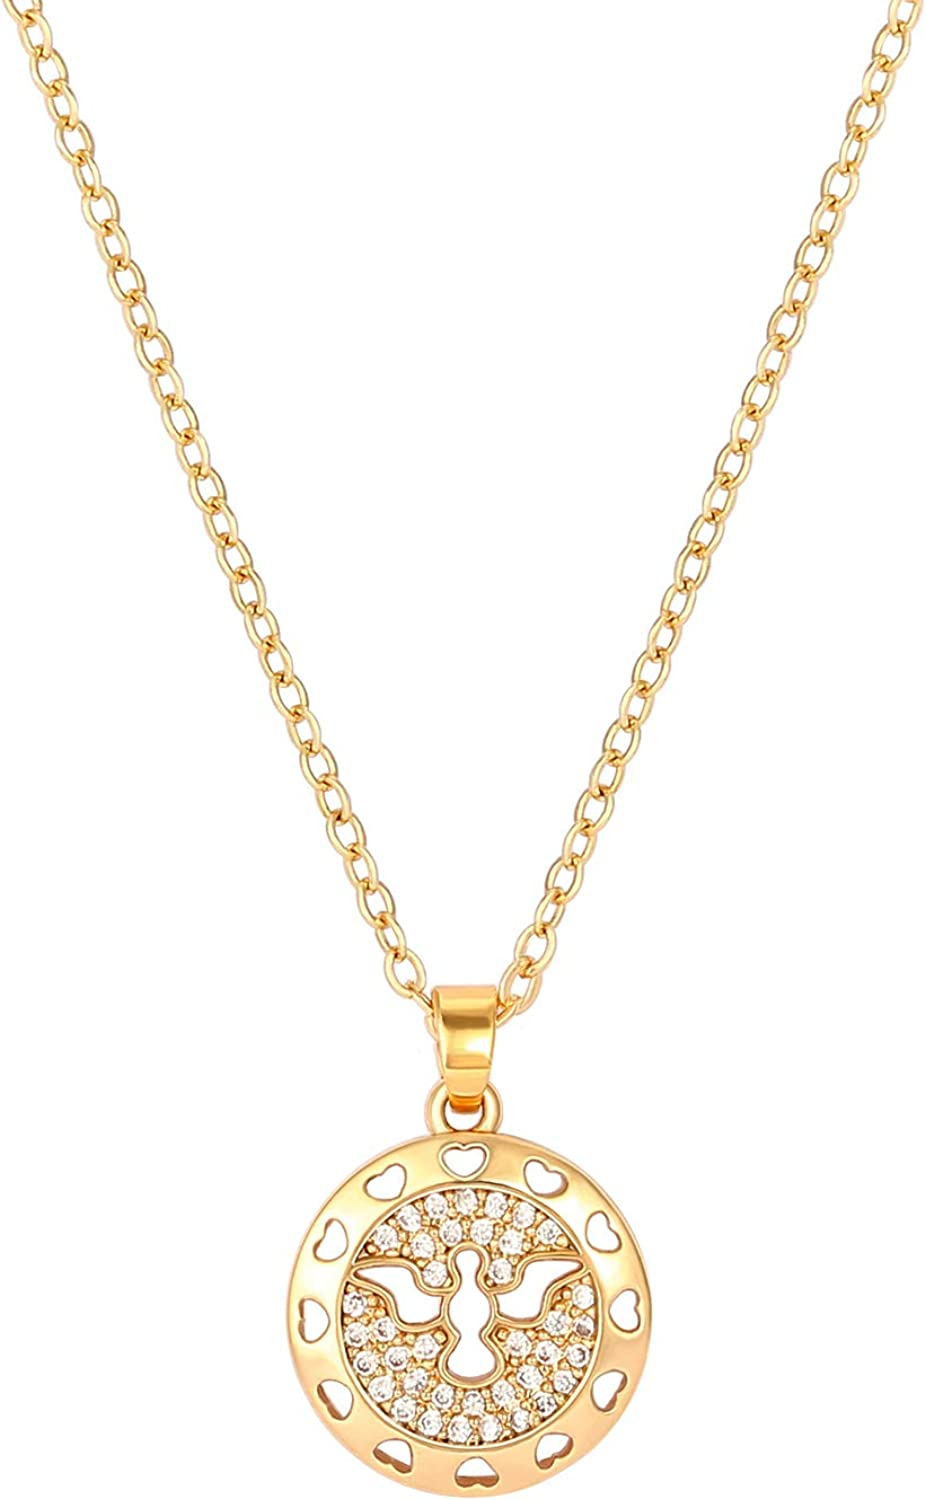 18K Gold Evil Eye Sanskrit Symbol Om Pendant Necklace Dainty Lion Medallion Necklaces Bird Eagle Round Disc Pendant Necklaces for Women Satellite Beaded Chain Lucky Charm Necklace Jewelry